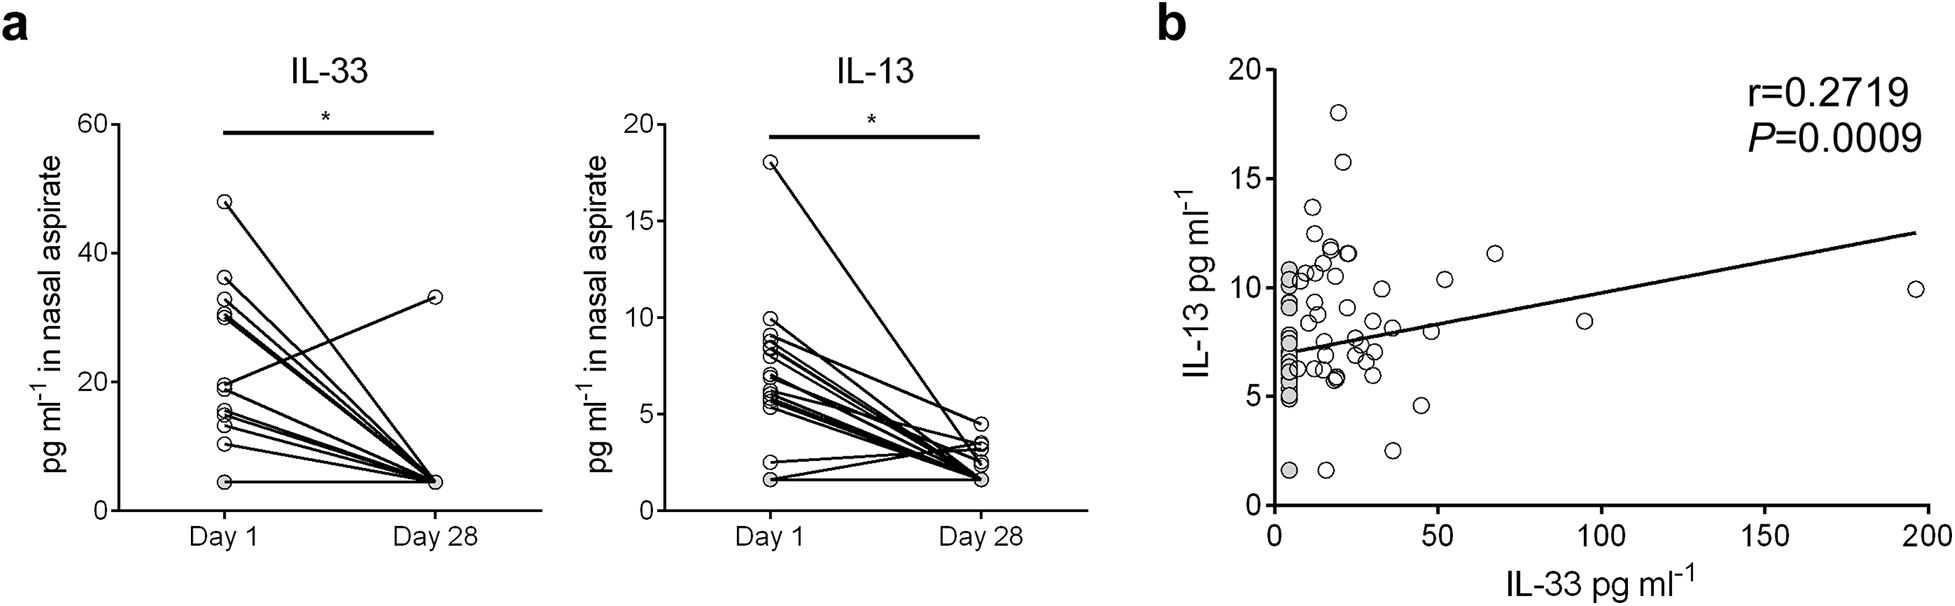 IL-33 and IL-13 concentrations are elevated in nasal aspirates from infants hospitalized with RSV infection.